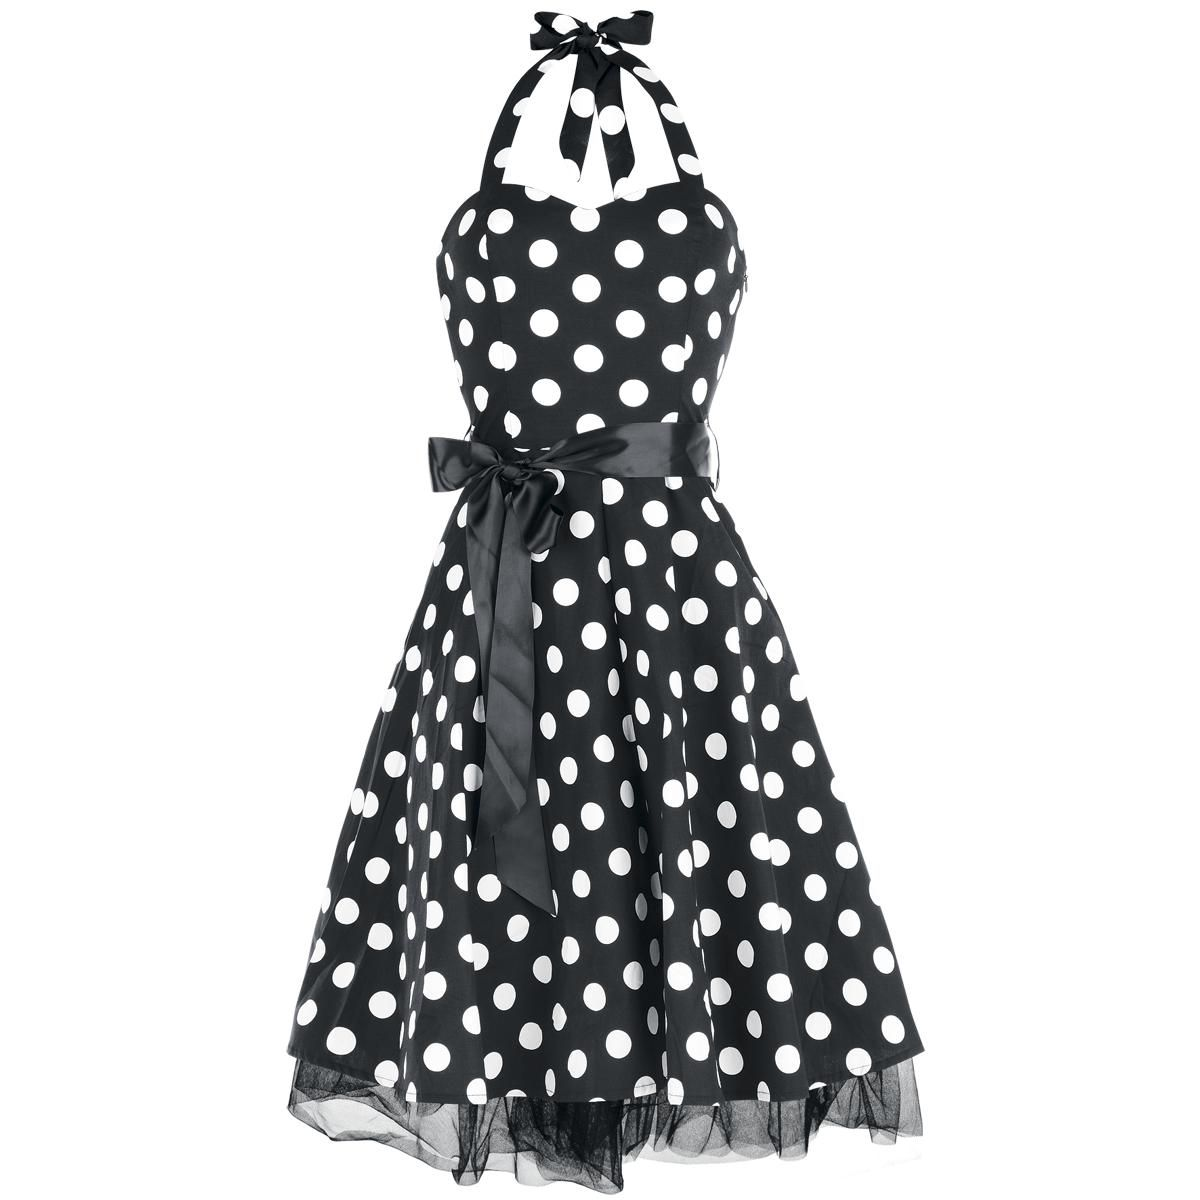 "Big Dot Dress Abito in stile anni '50 ""Big Dot Dress"" di H&R London!"